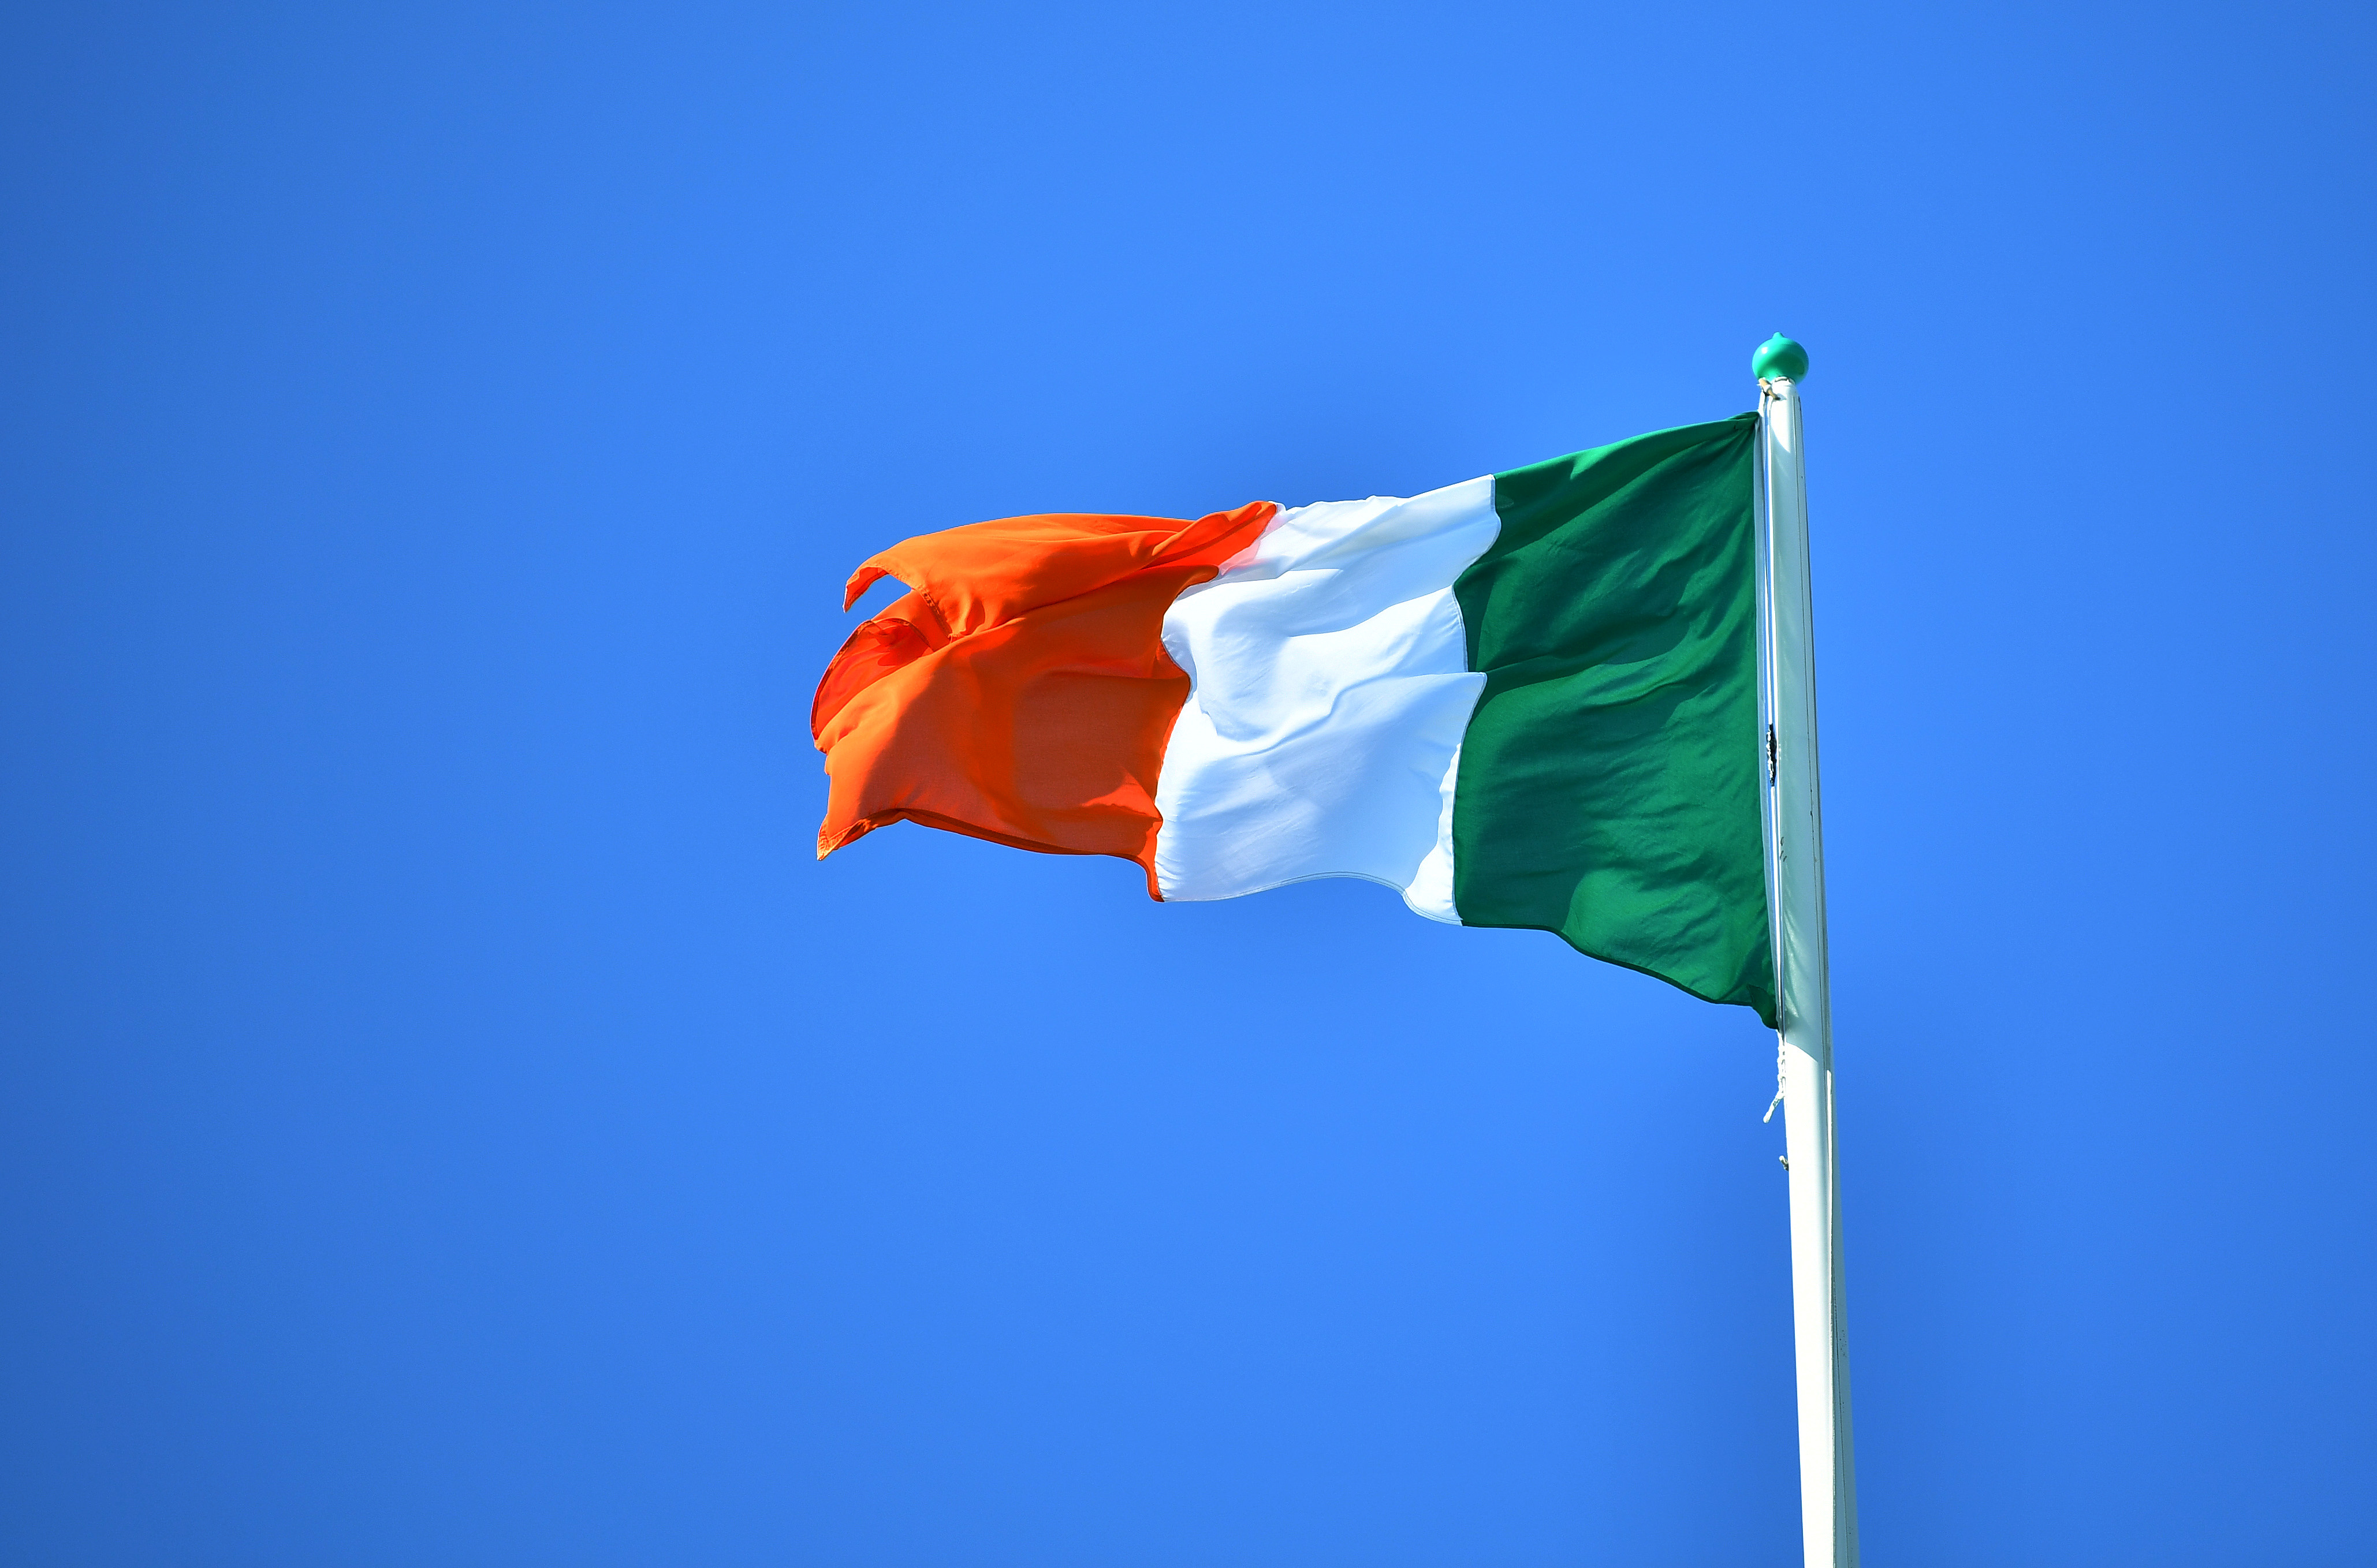 National flag of Ireland flies above the President's residence in Dublin, August 25, 2018. REUTERS/Dylan Martinez - RC12C3B40540